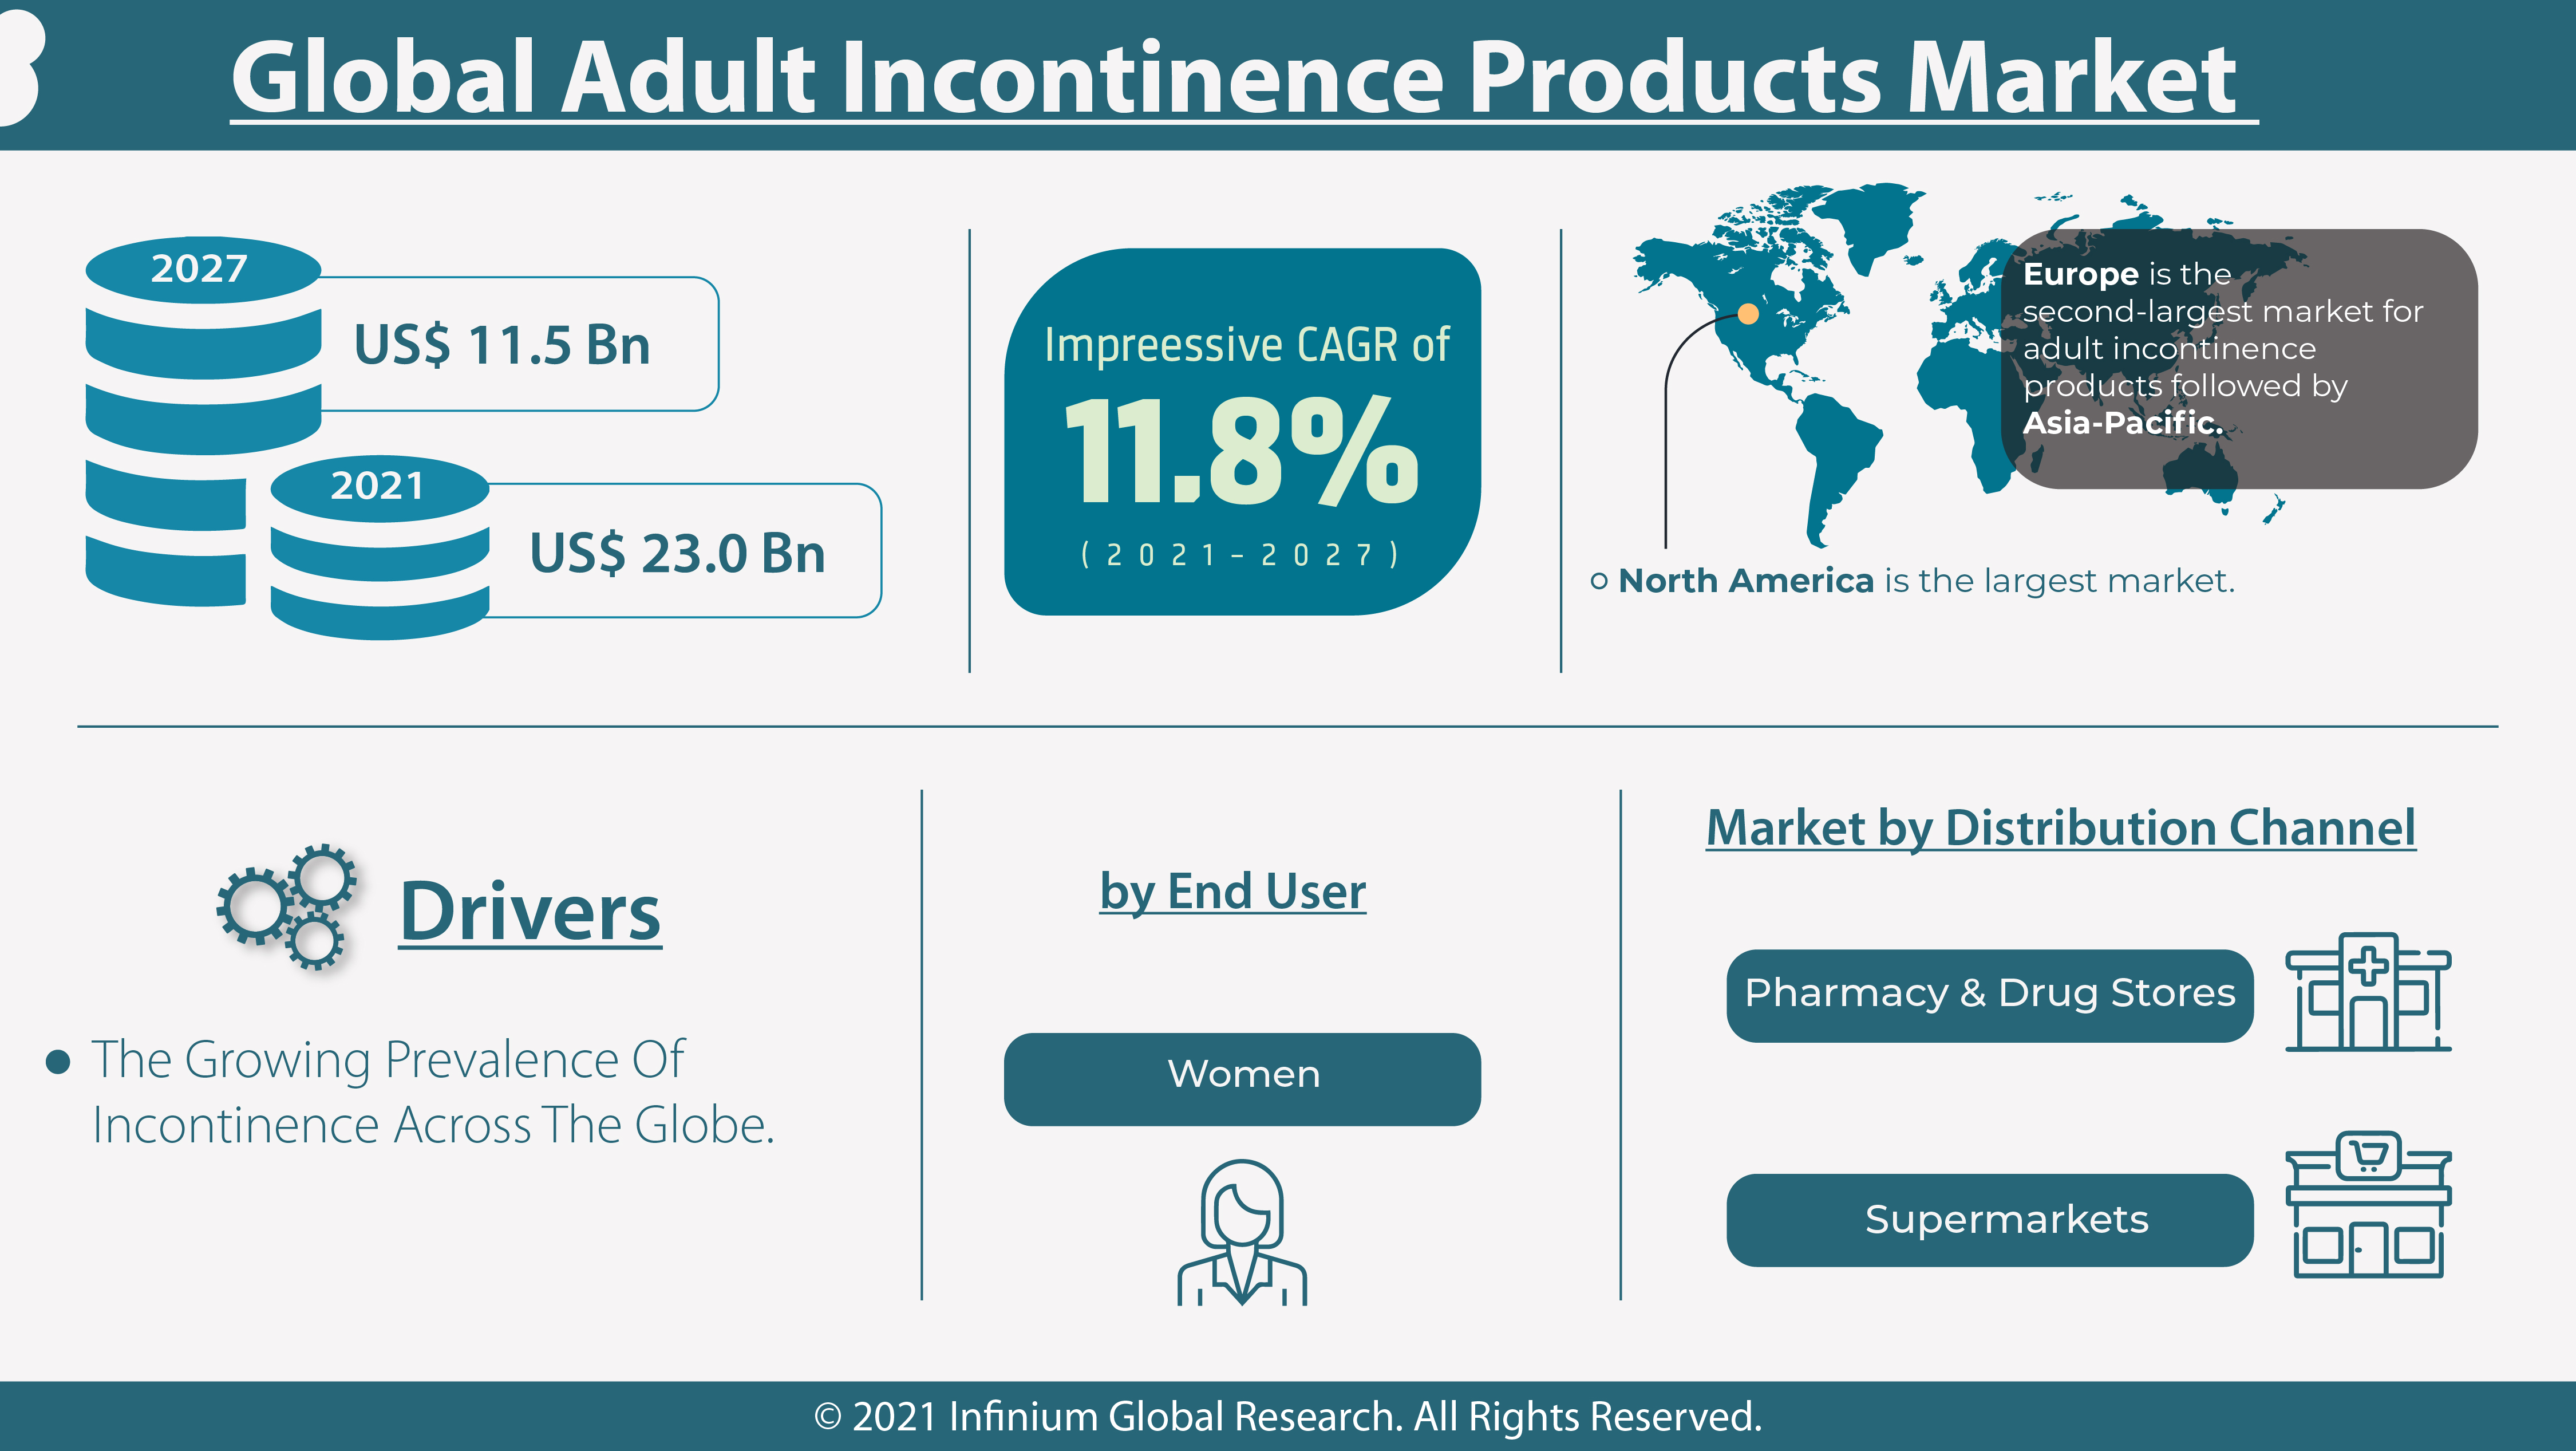 Global Adult Incontinence Products Market